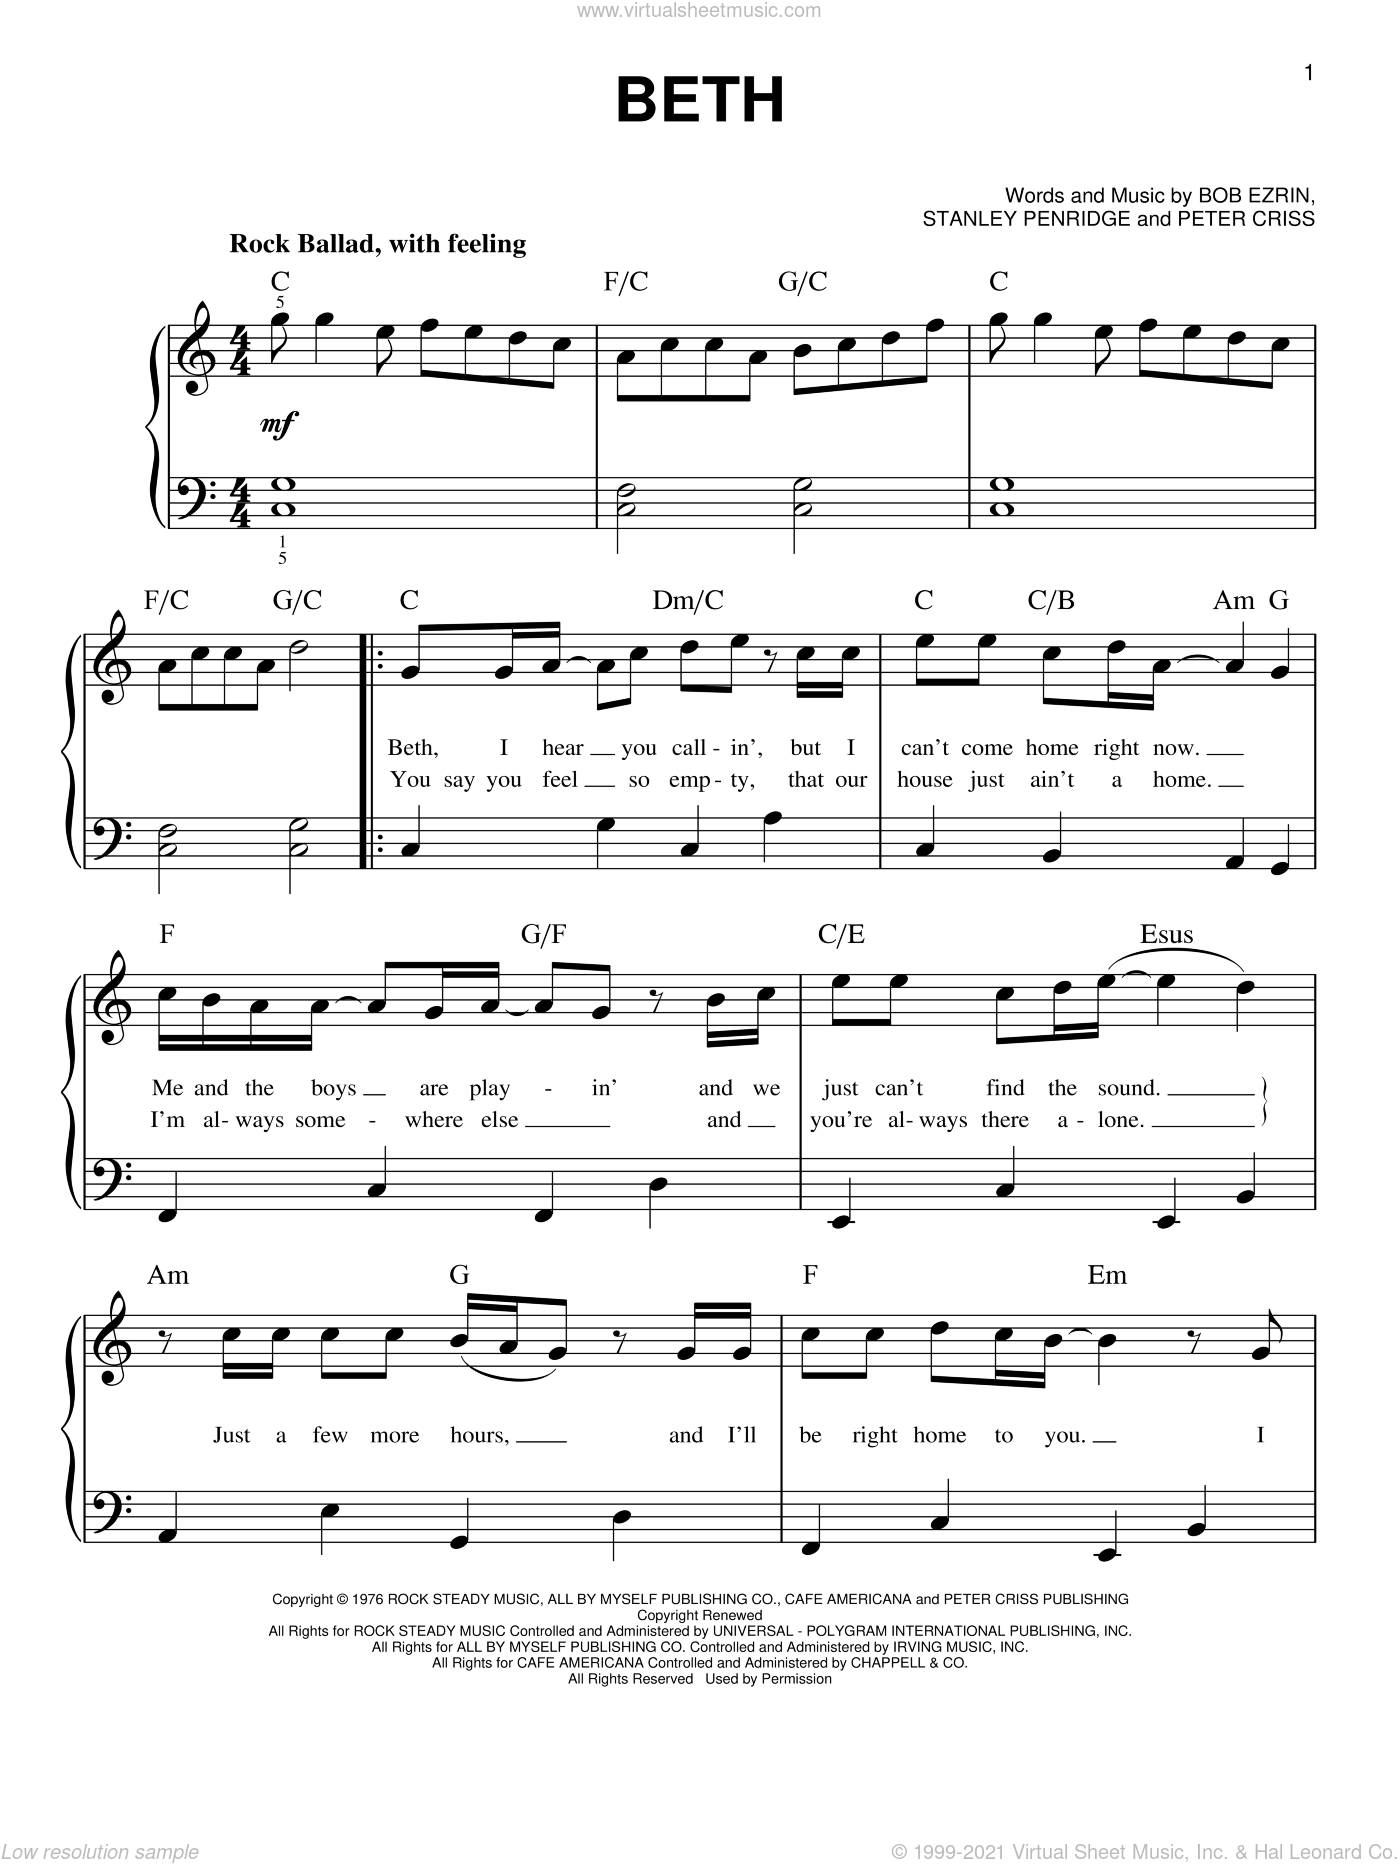 Beth sheet music for piano solo by KISS, Bob Ezrin, Peter Criss and Stan Penridge, beginner skill level